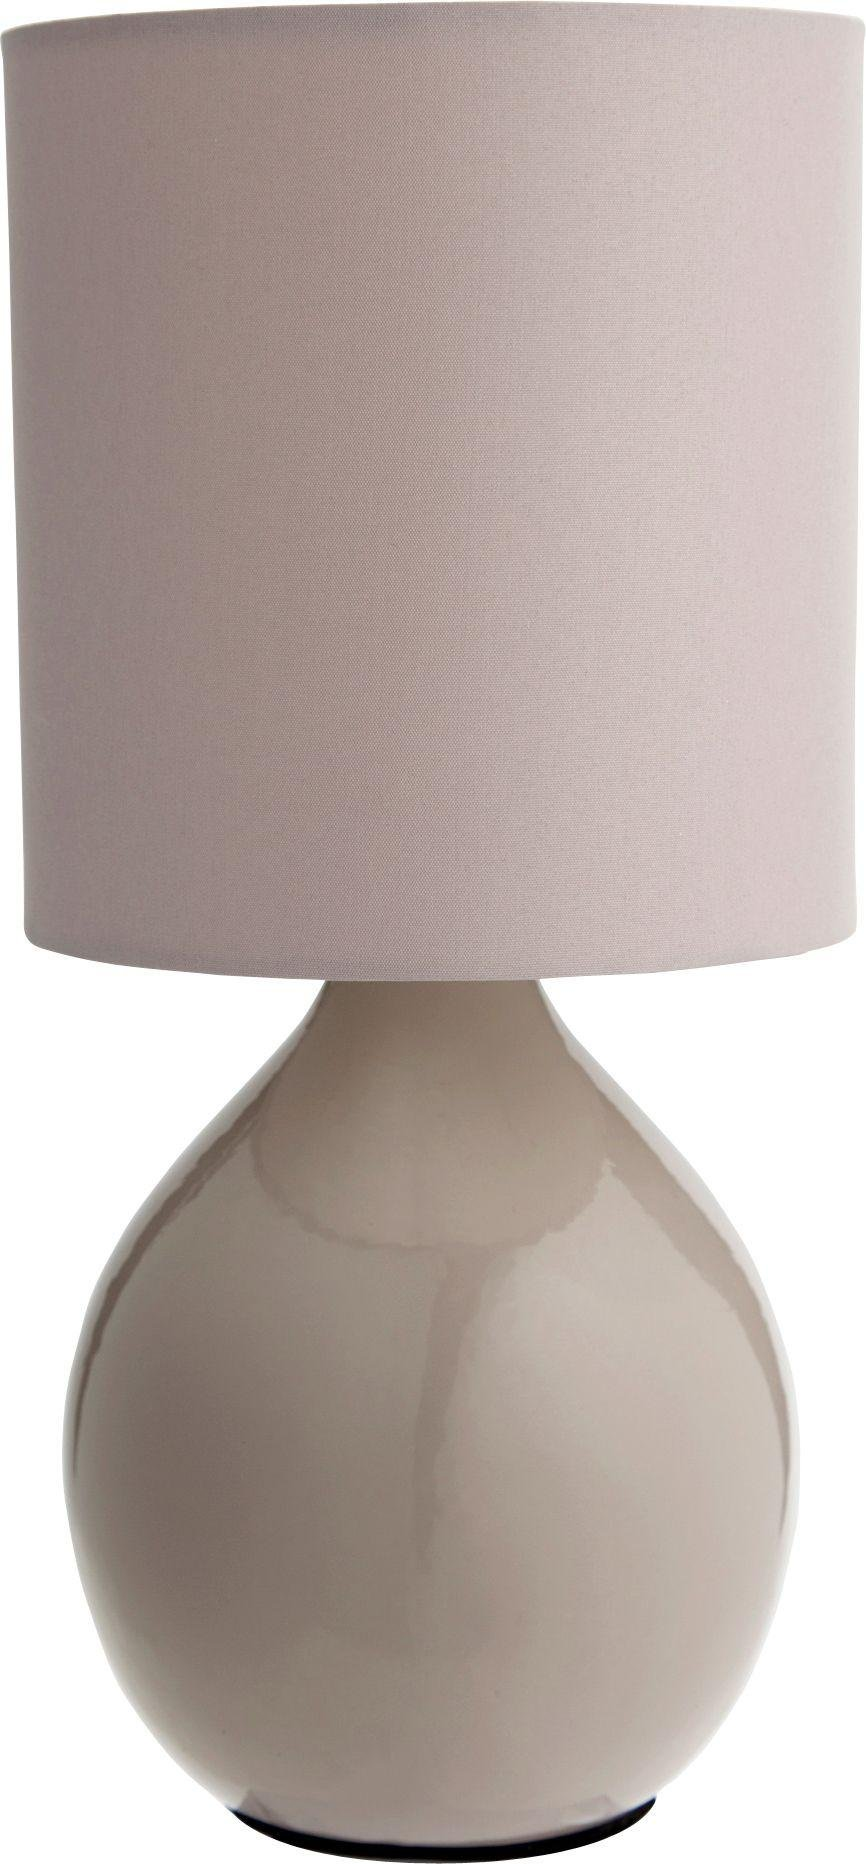 Image of HOME Round Ceramic Table Lamp - Cafe Mocha